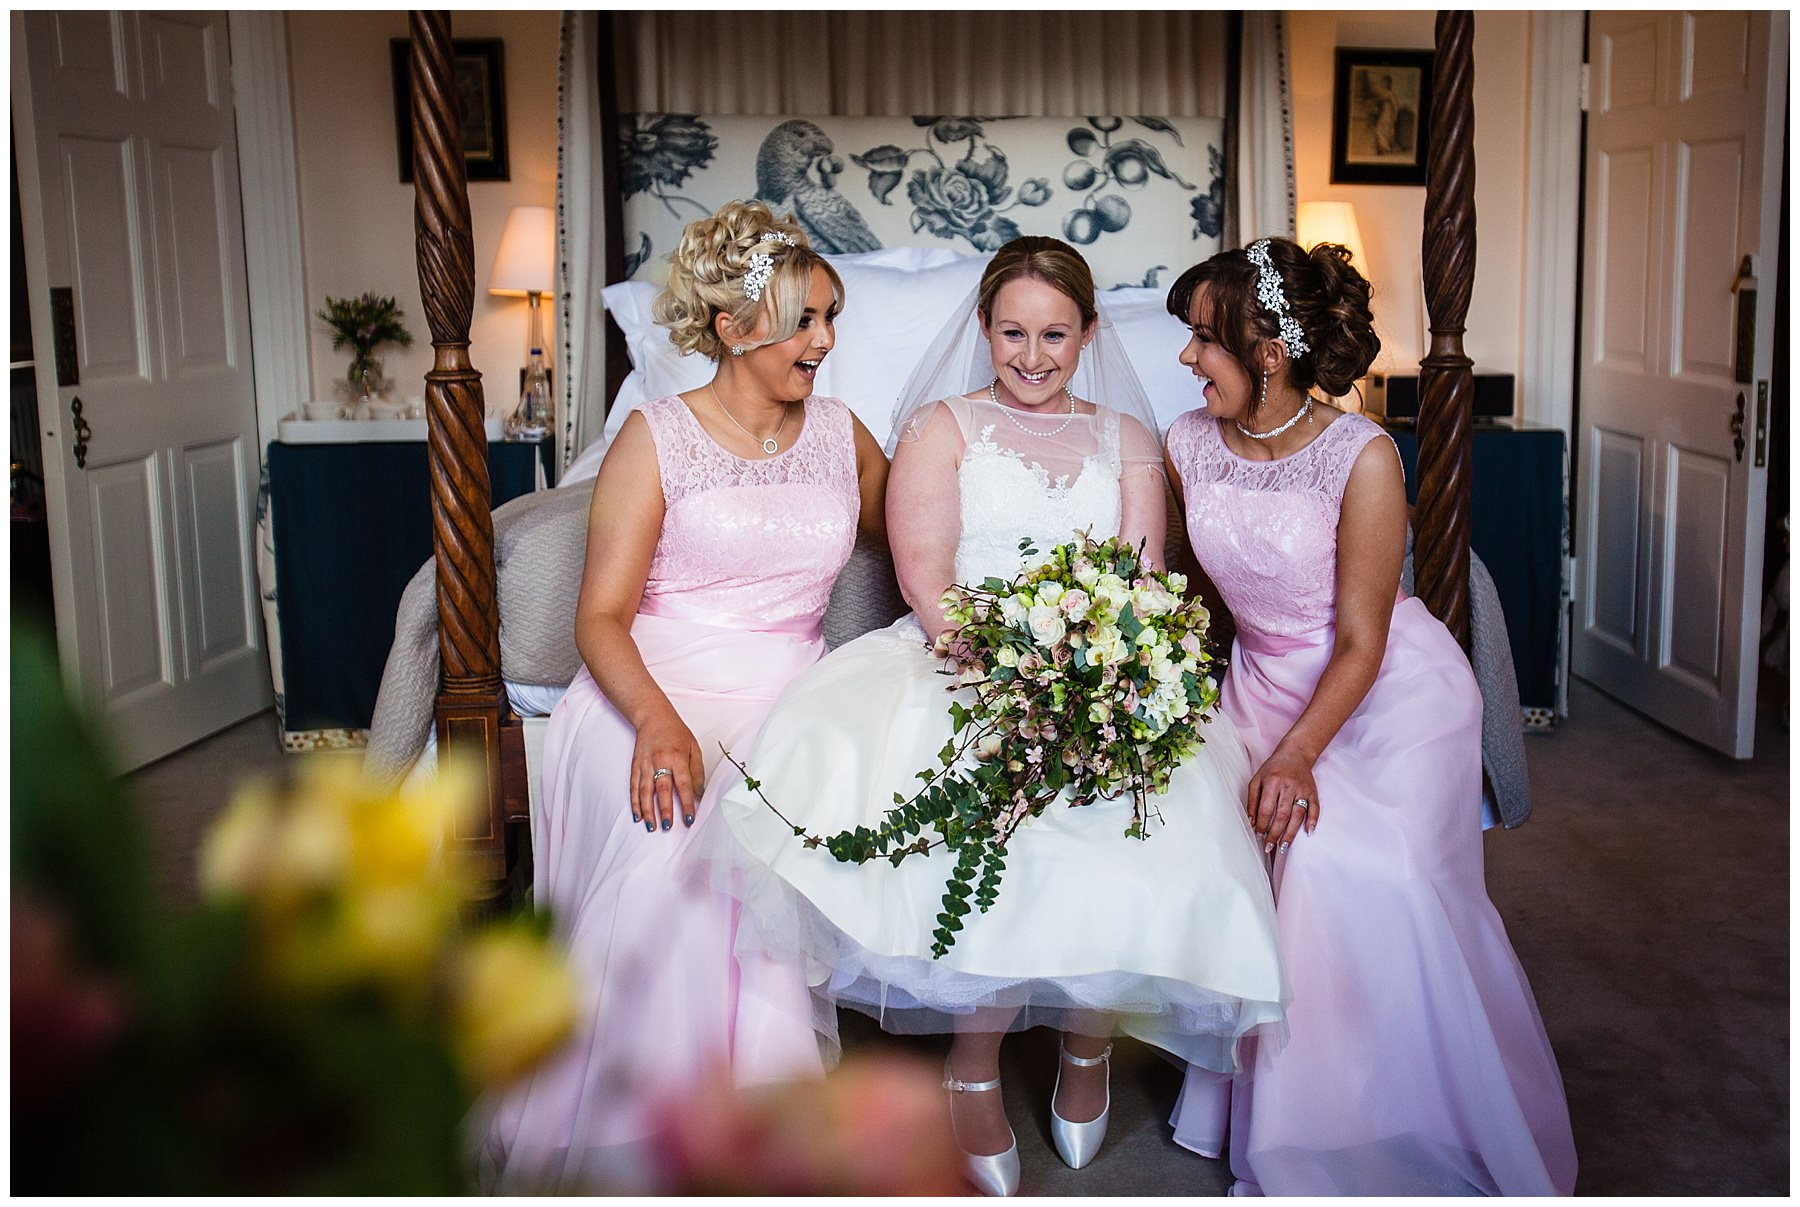 candid photo of the bride giggling with two bridemaids at the end of the bed in the bridal suite